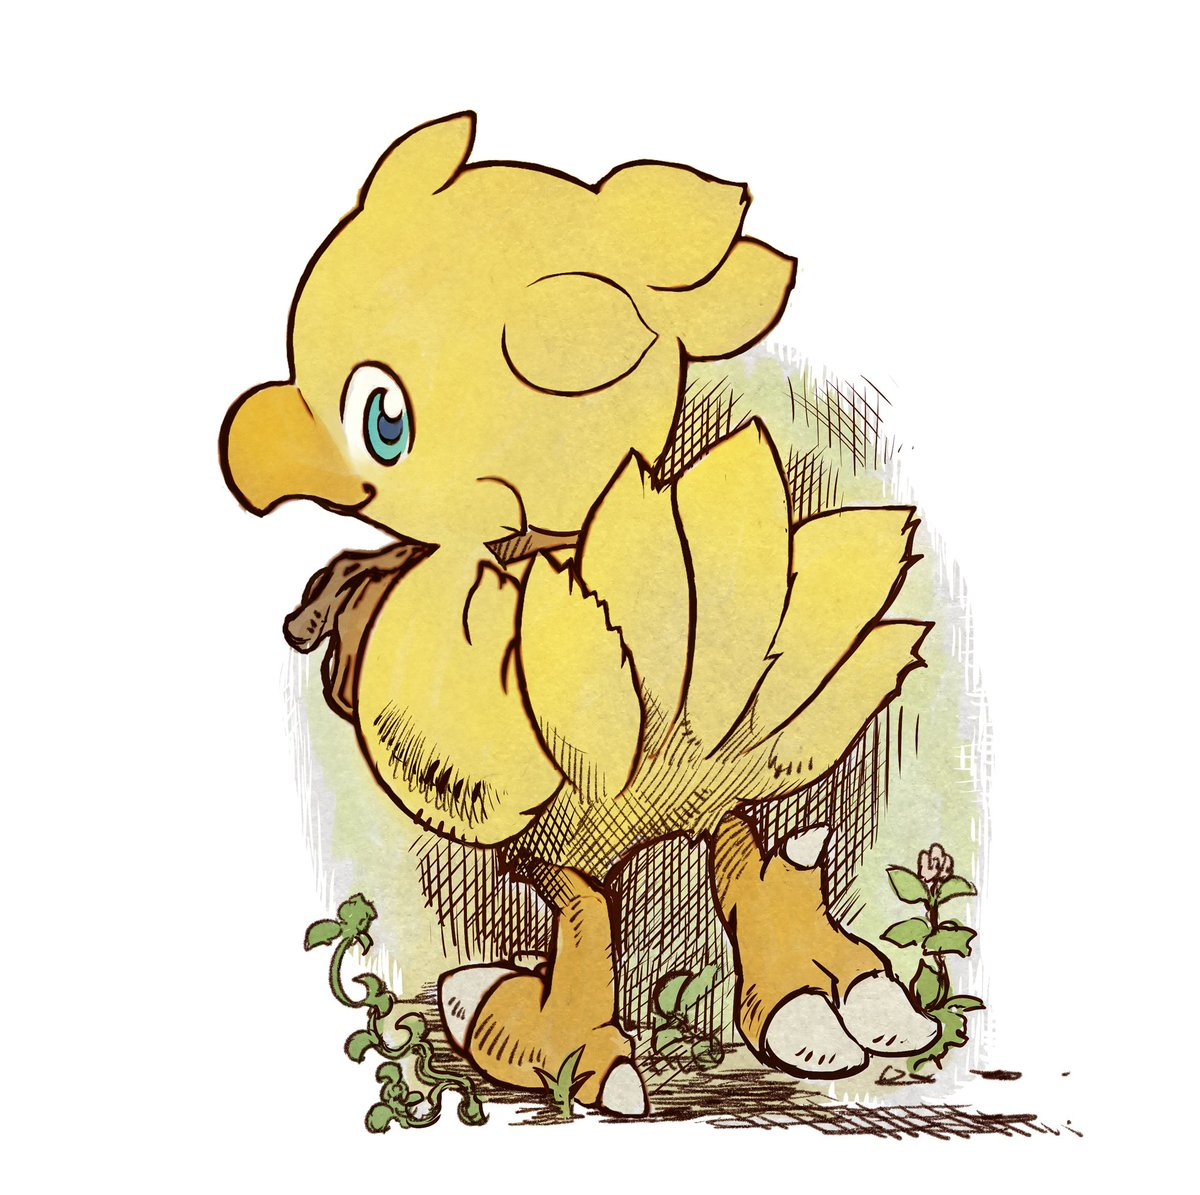 To celebrate today&#39;s release of Chocobo&#39;s Mystery Dungeon Every Buddy, we worked with Square Enix to showcase the art of character designer @ItahanaT:  https:// play.st/2UJnkmM  &nbsp;   Enjoy!<br>http://pic.twitter.com/uH5x8eFf1q